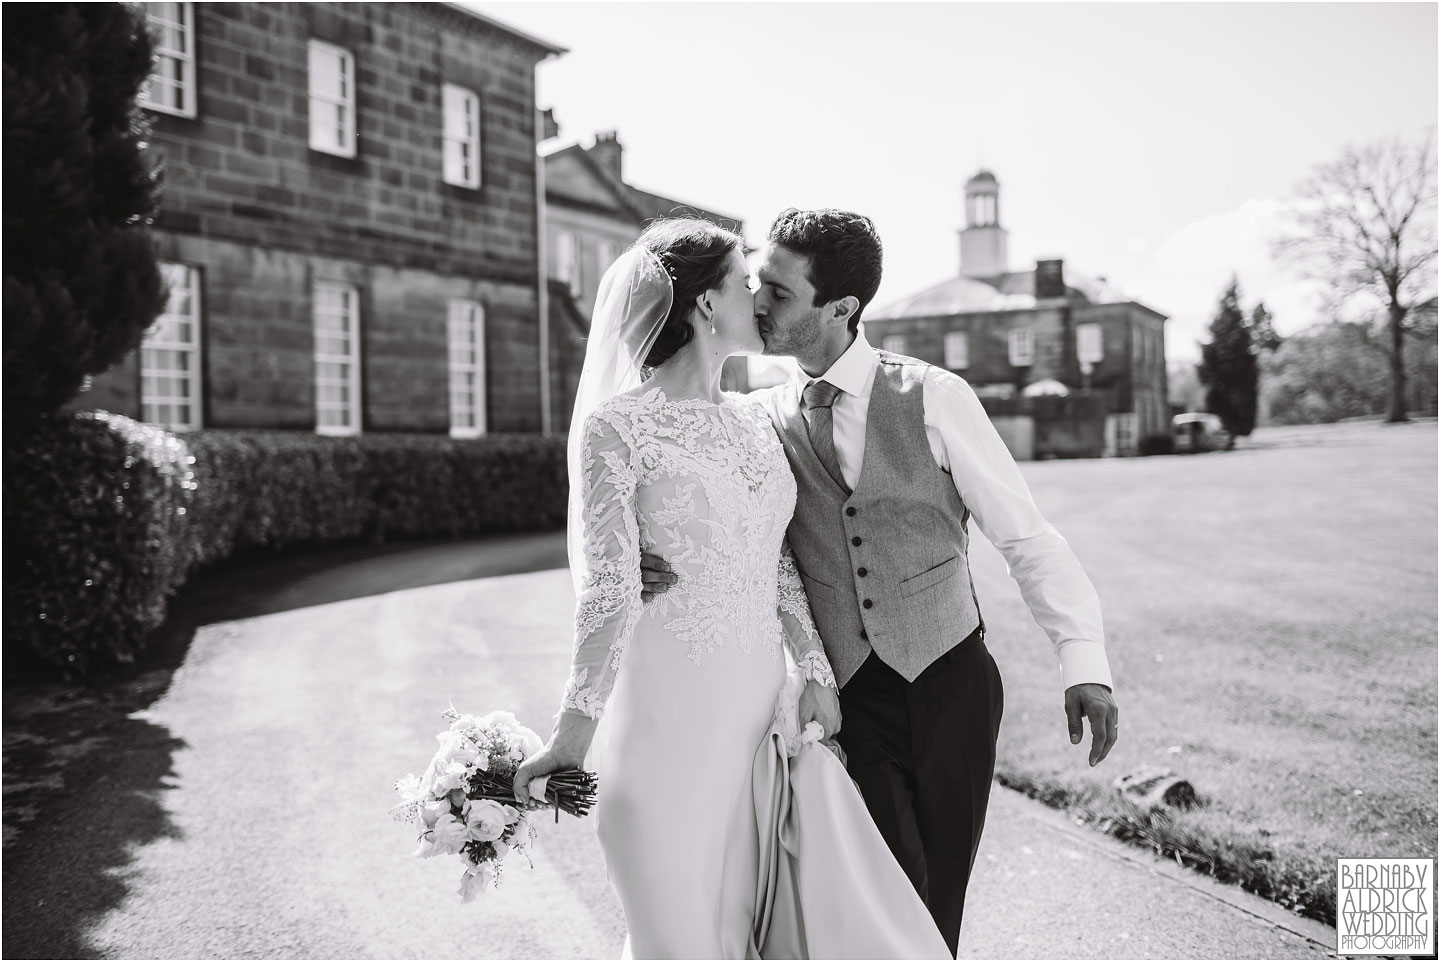 Sunny wedding portrait at Denton Hall, West Yorkshire Exclusive Wedding Venue, Wedding photos by Barnaby Aldrick